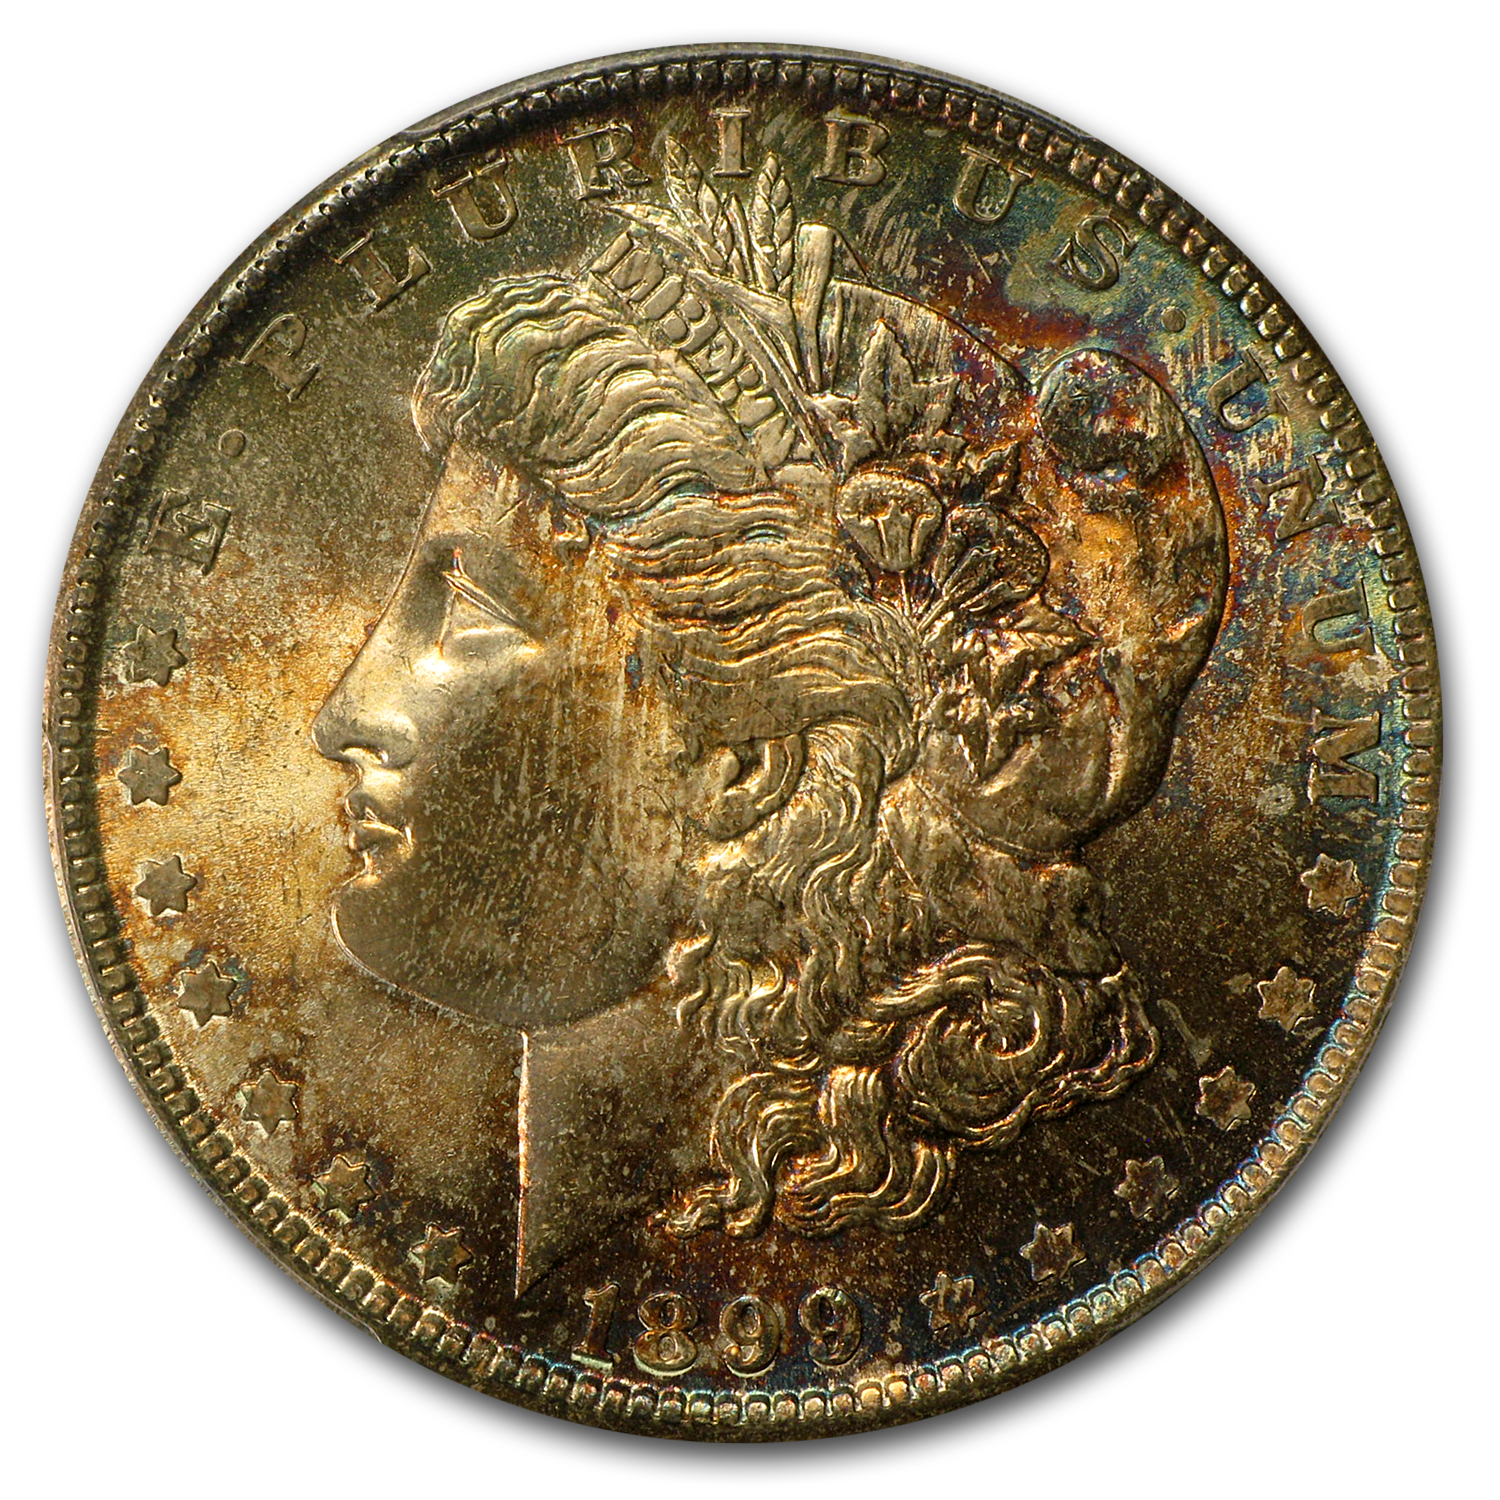 1899-O Morgan Dollar MS-65 PCGS - Burgundy and Blue Obverse - CAC